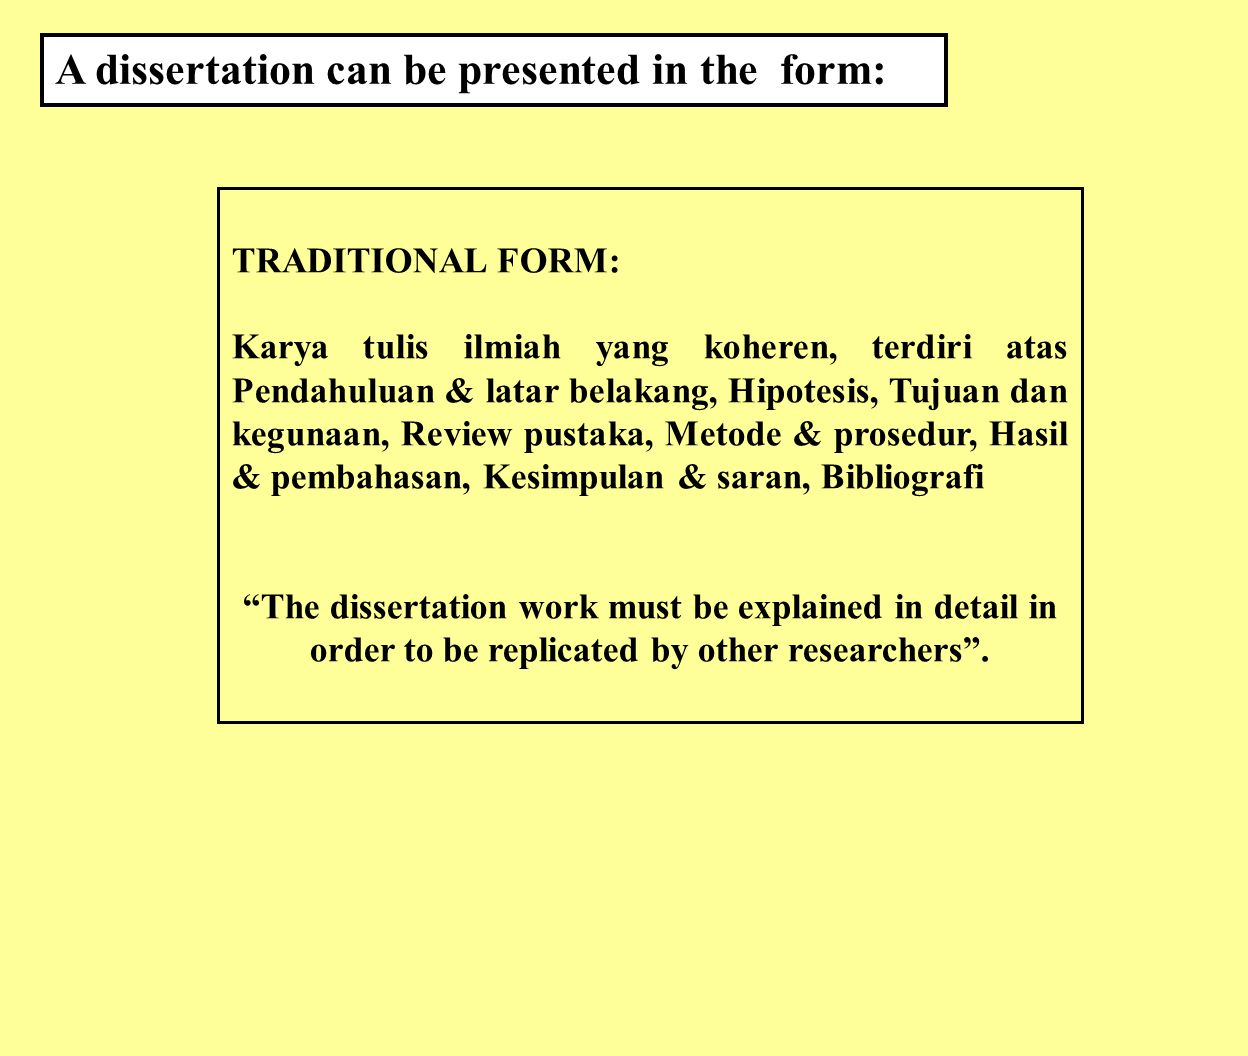 A dissertation can be presented in the form: